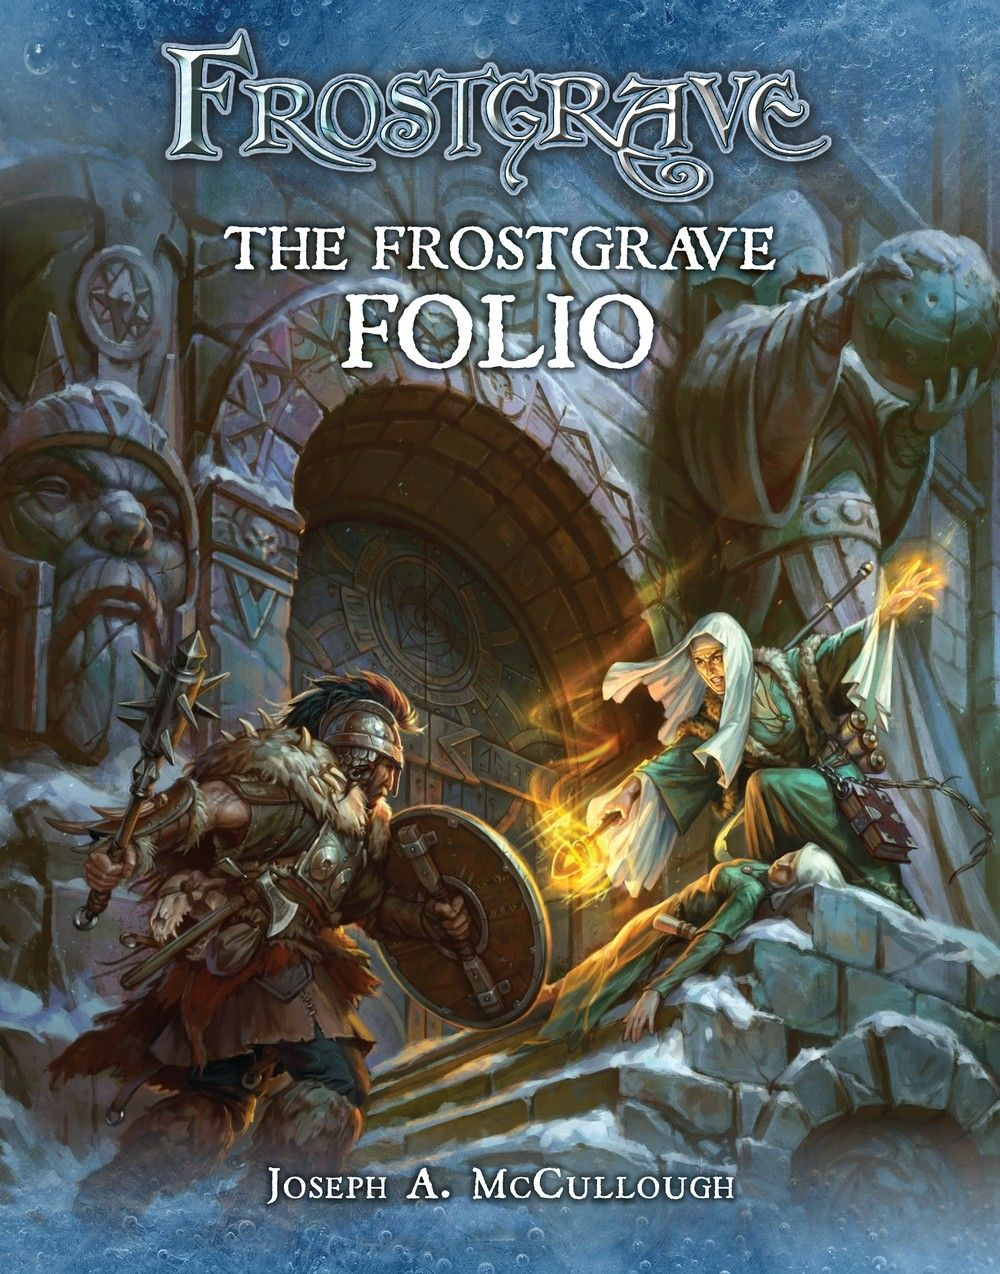 The Frostgrave Folio With Images Ebook Fantasy Short Stories